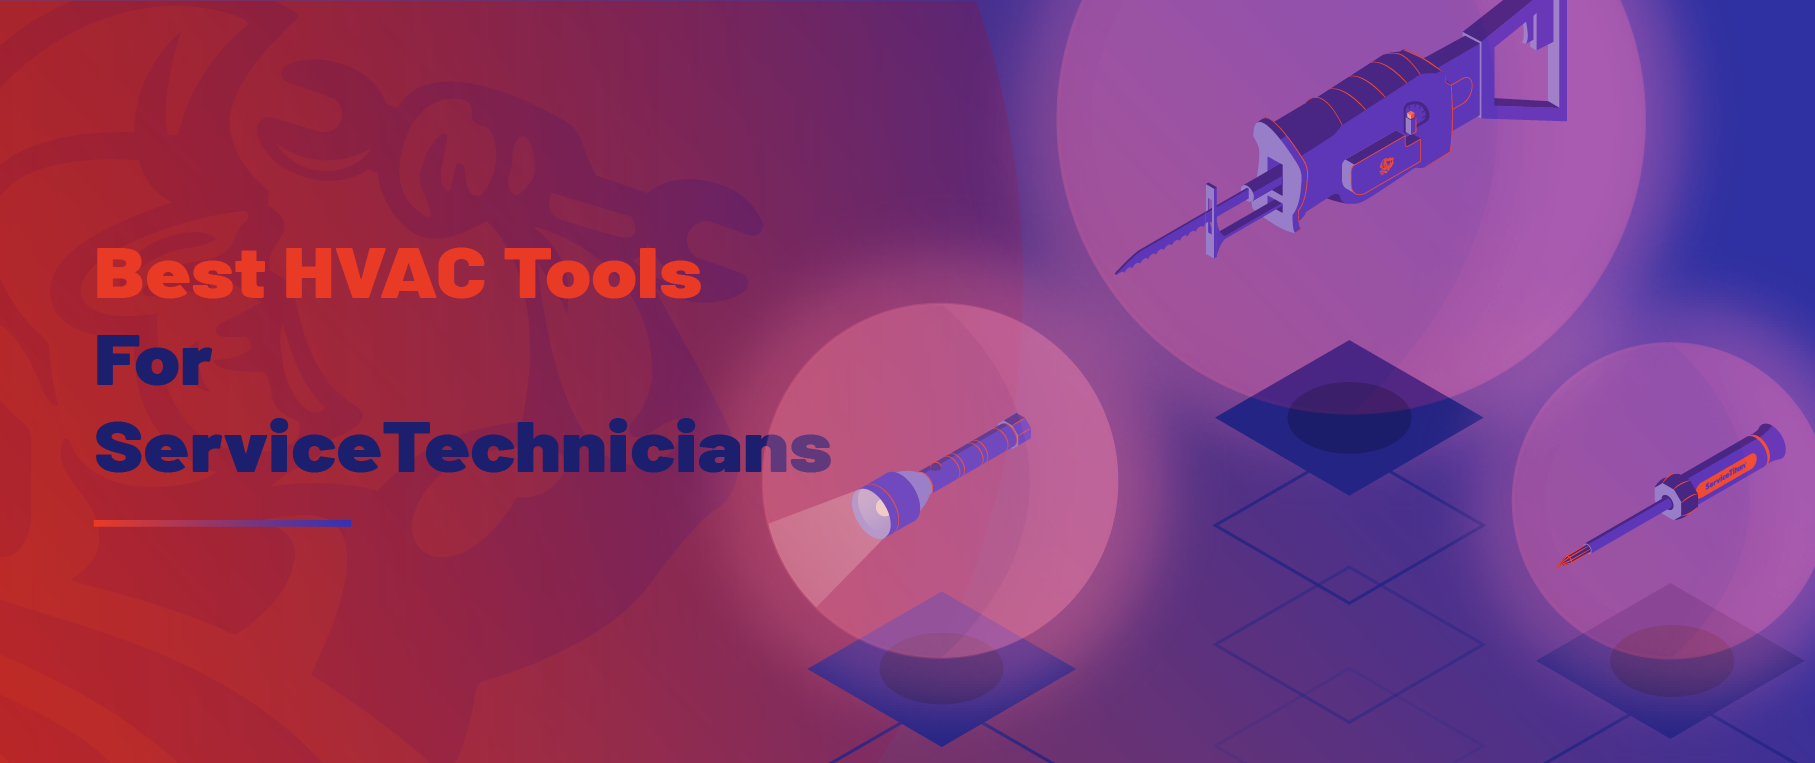 27 Essential HVAC Tools For Home Service Techs in 2019